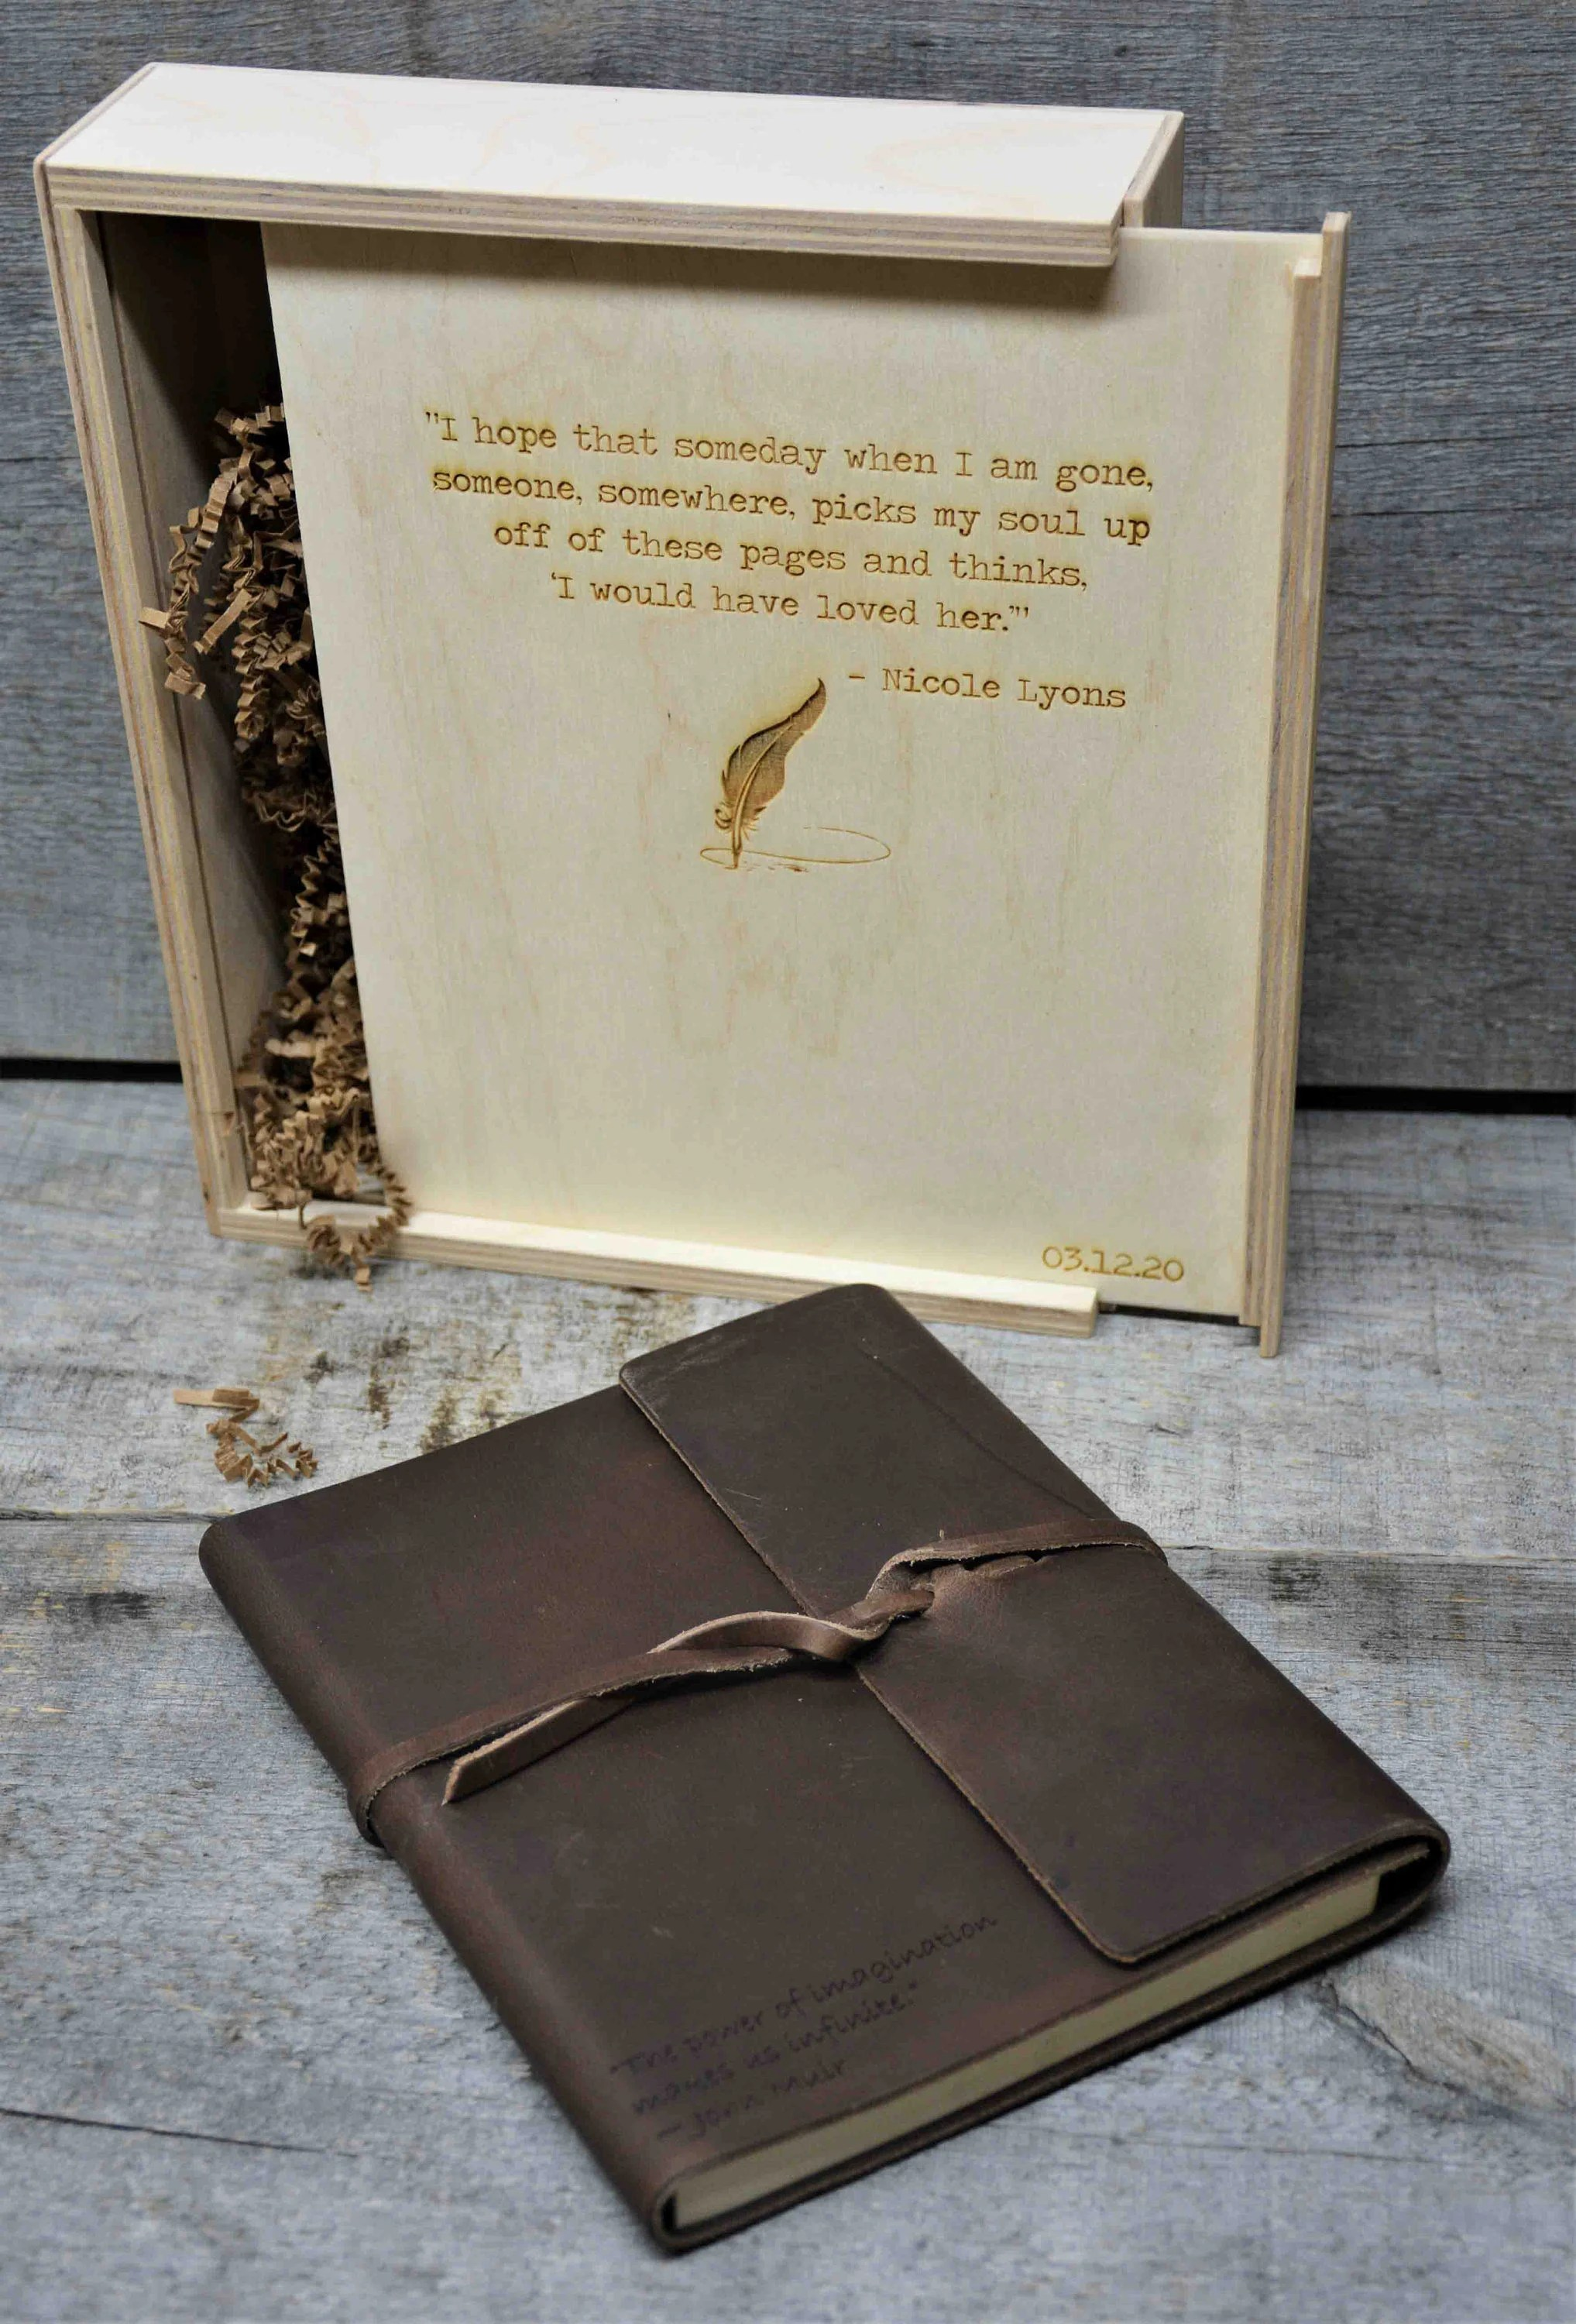 Premium Leather Journal Personalized Custom Engraved image 6